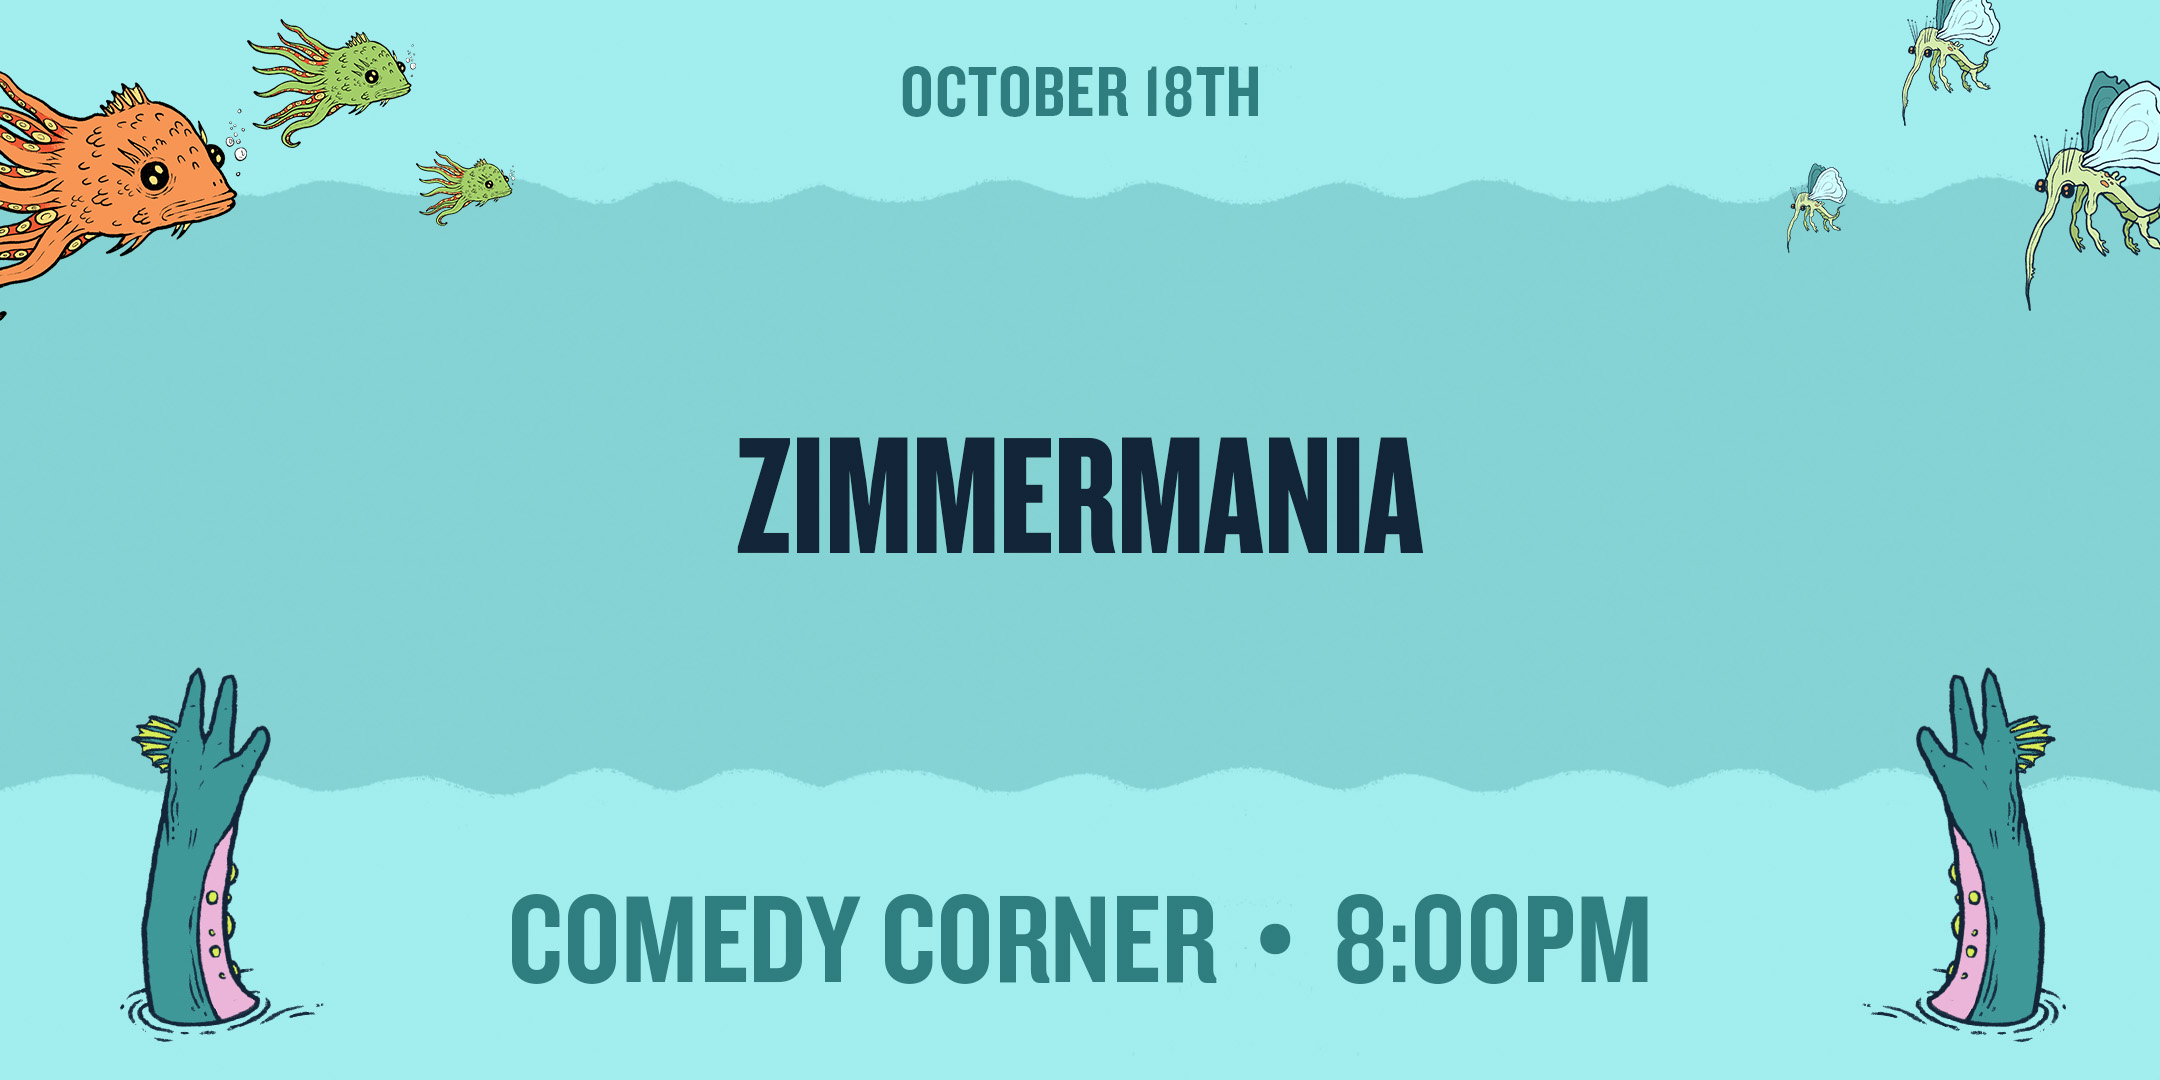 OCT18-Zimmermania.jpg